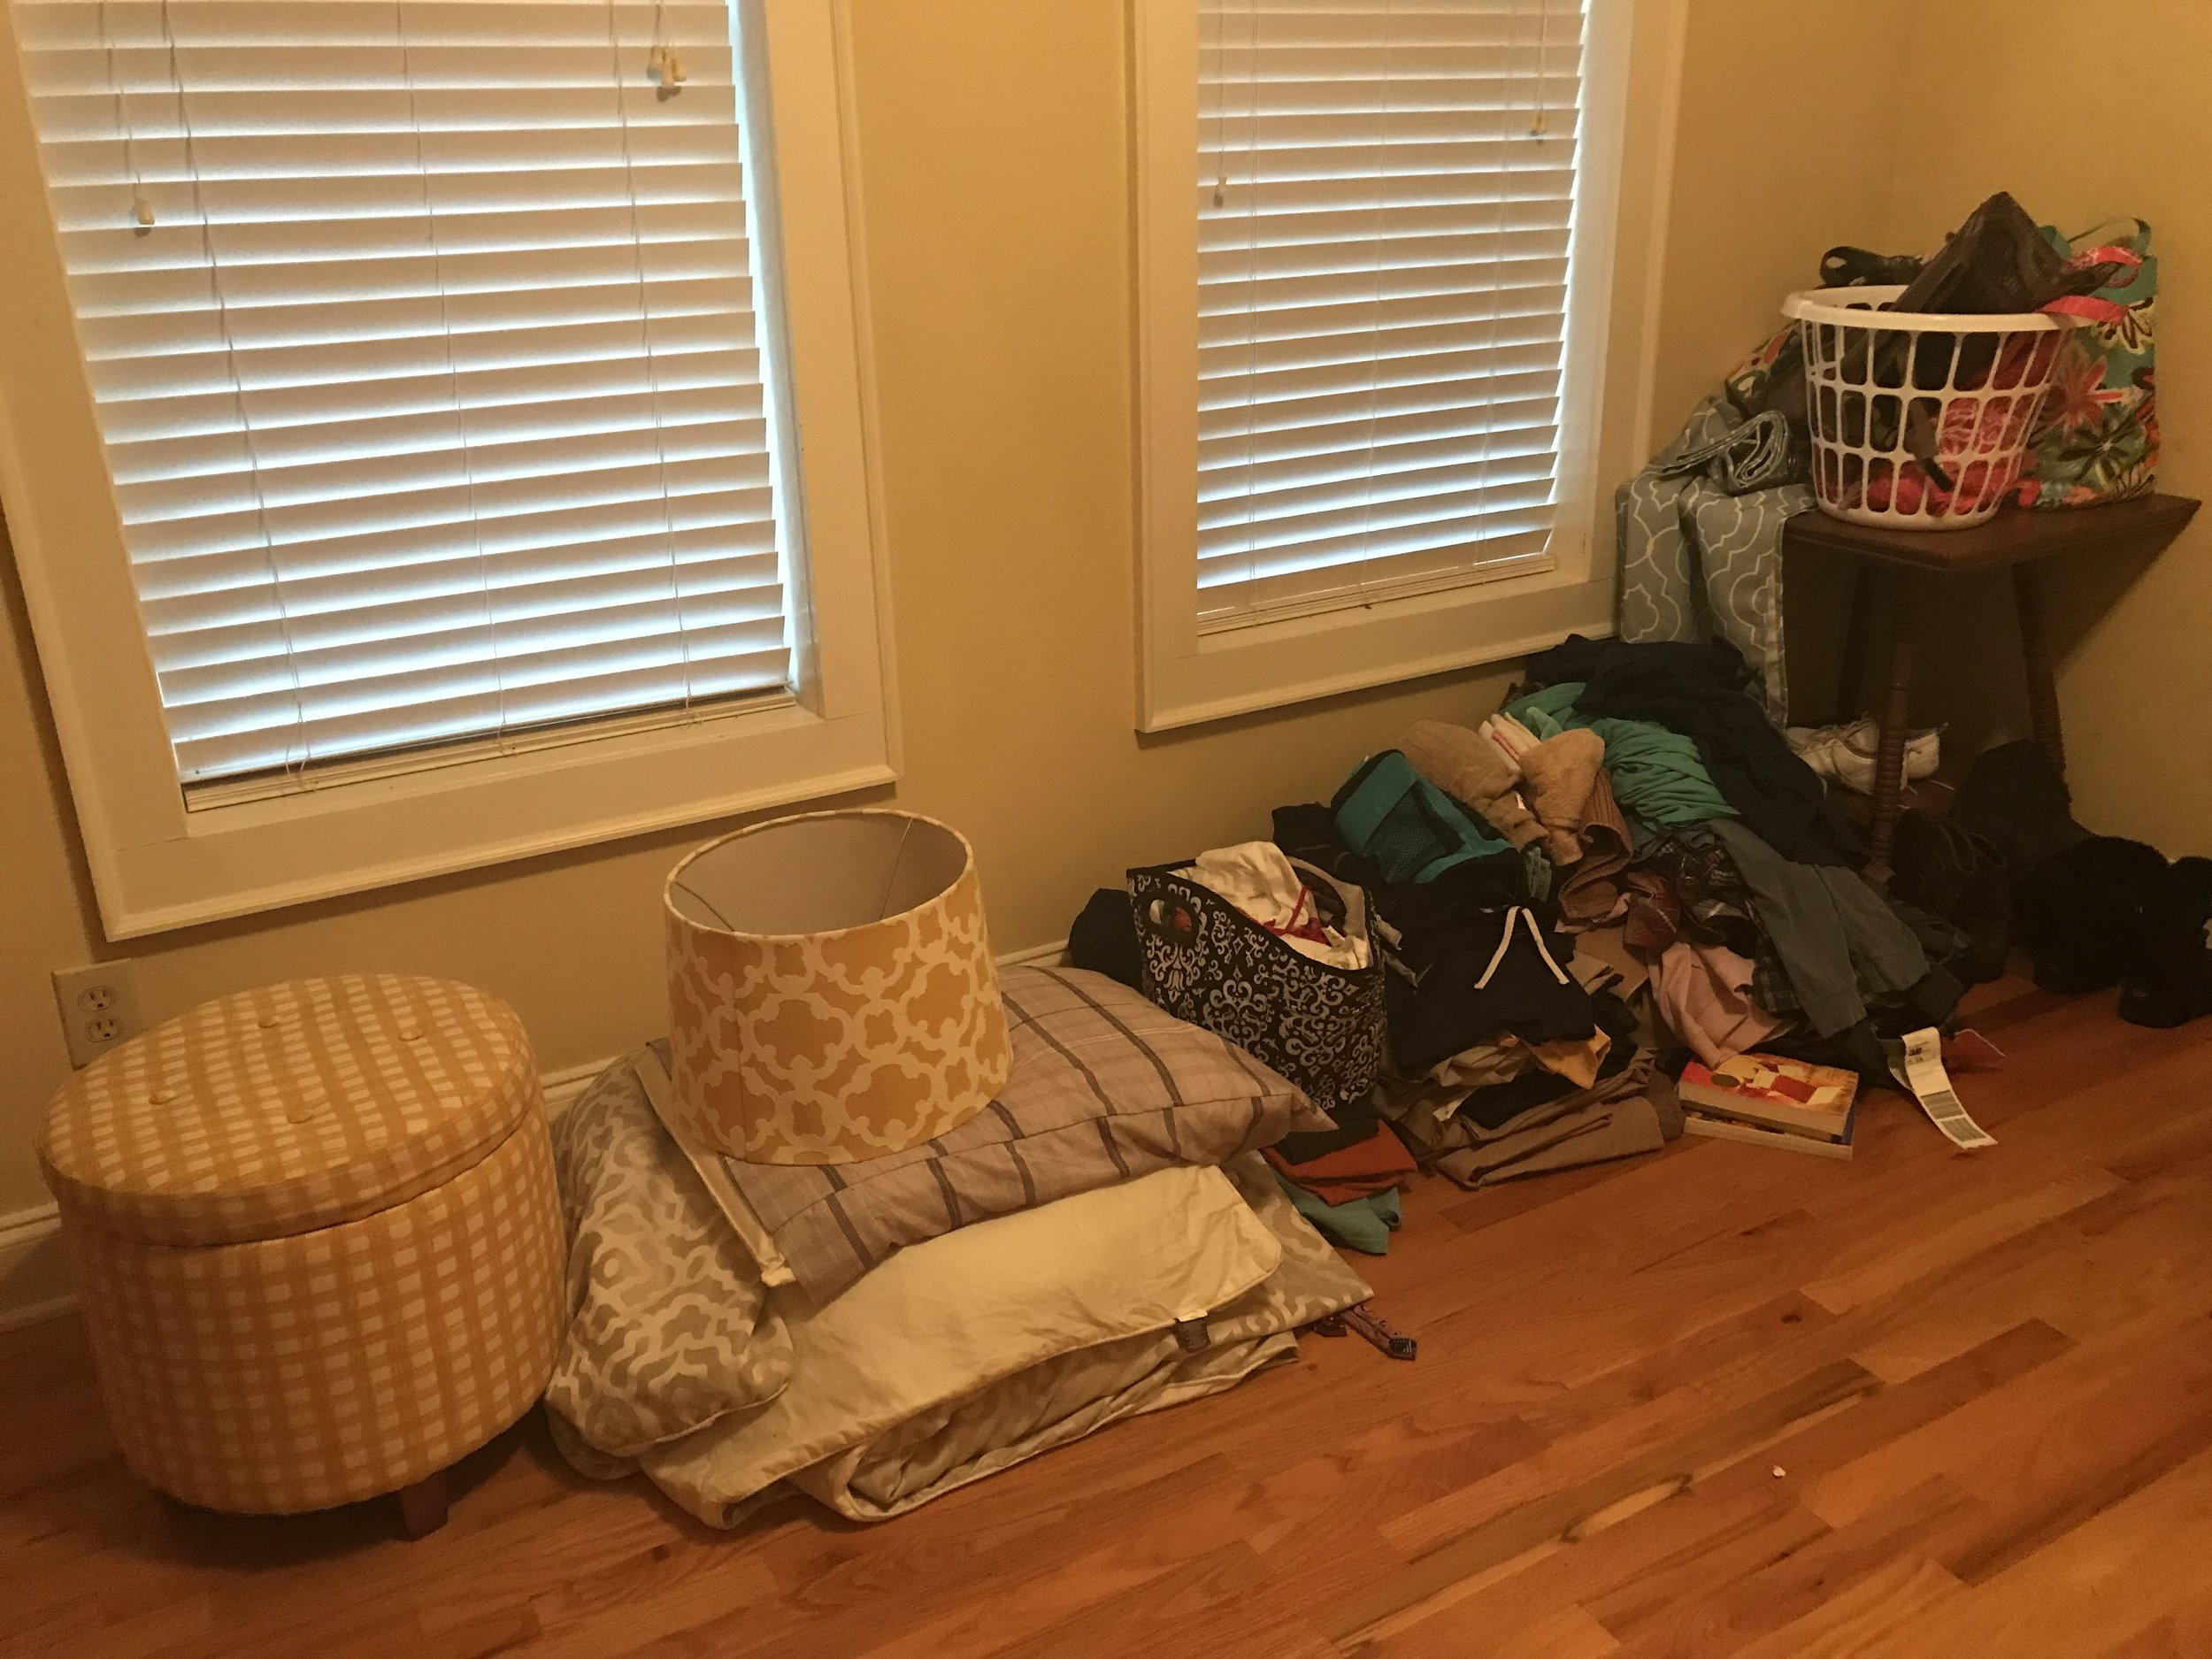 """This is the photo I sent to my mom and said """"one day we will have nothing left and it will be wonderful."""" and she sent back """"*inserts eye roll*"""". My mom keeps EVERYTHING. I keep nothing and tell her she made me clutter phobic, so we balance each other out ;)"""